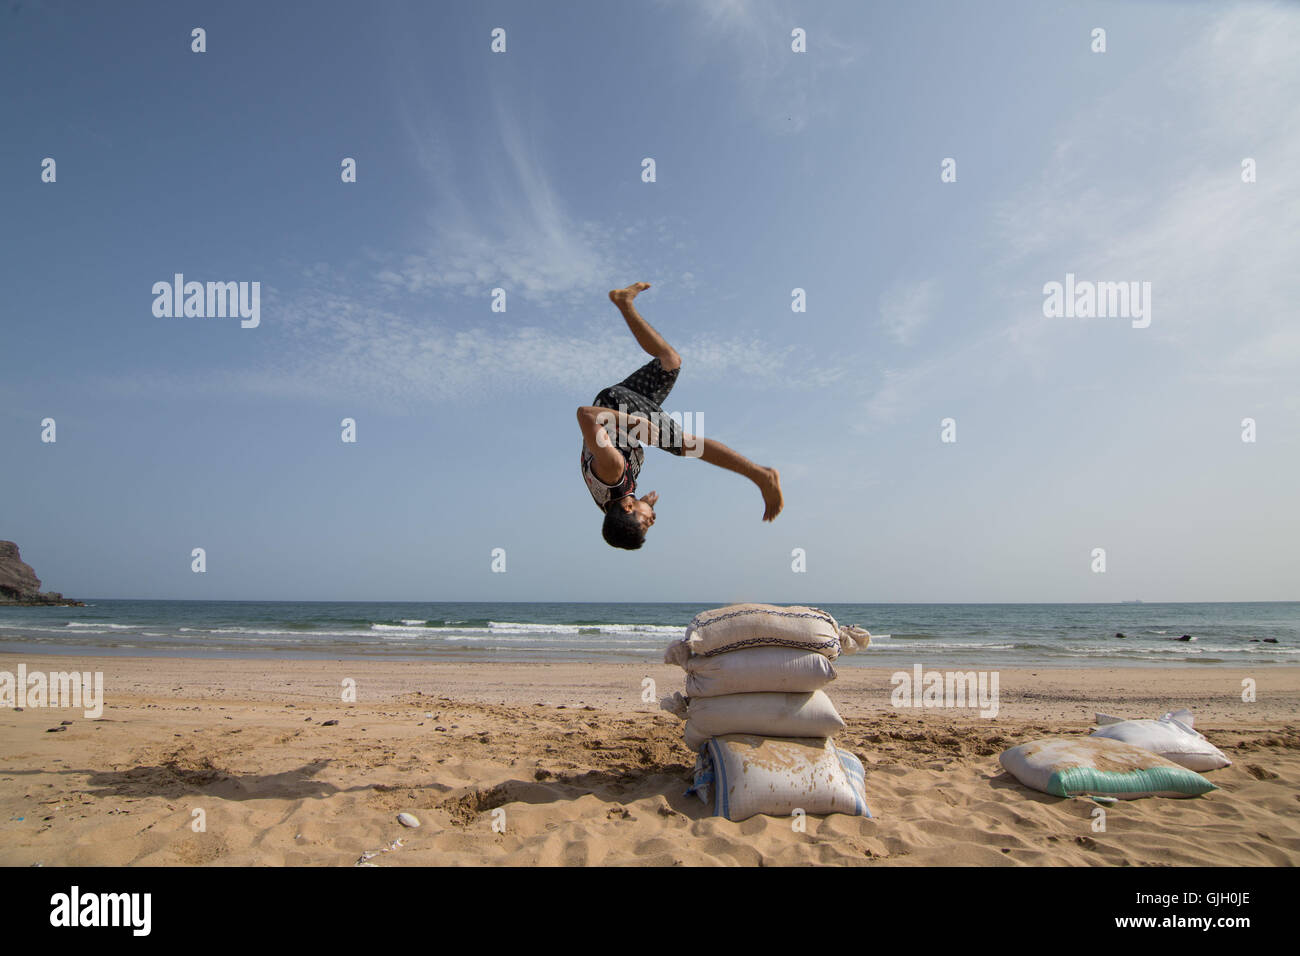 Aden, Yemen. 16th Aug, 2016. MOHAMED SAMY practices parkour on Lover's Beach in Aden, Yemen © Maria De - Stock Image